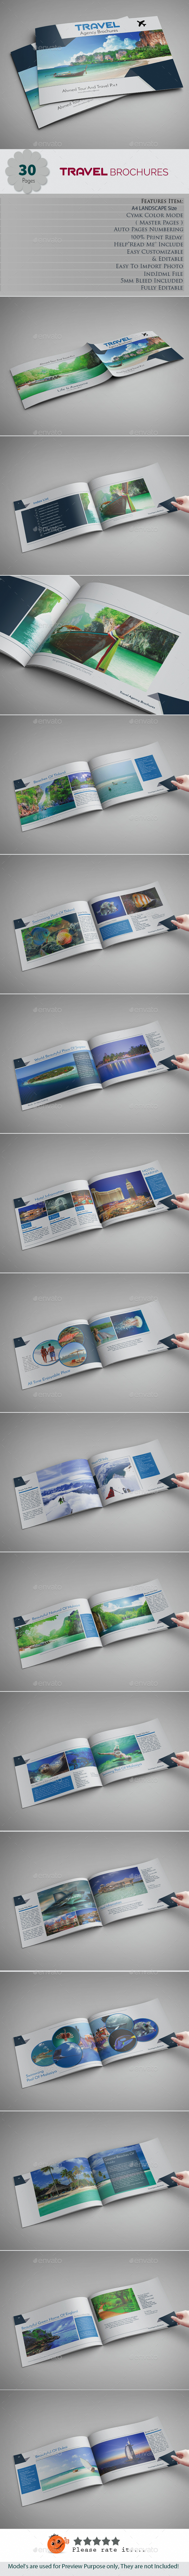 Travel Brochures - Brochures Print Templates